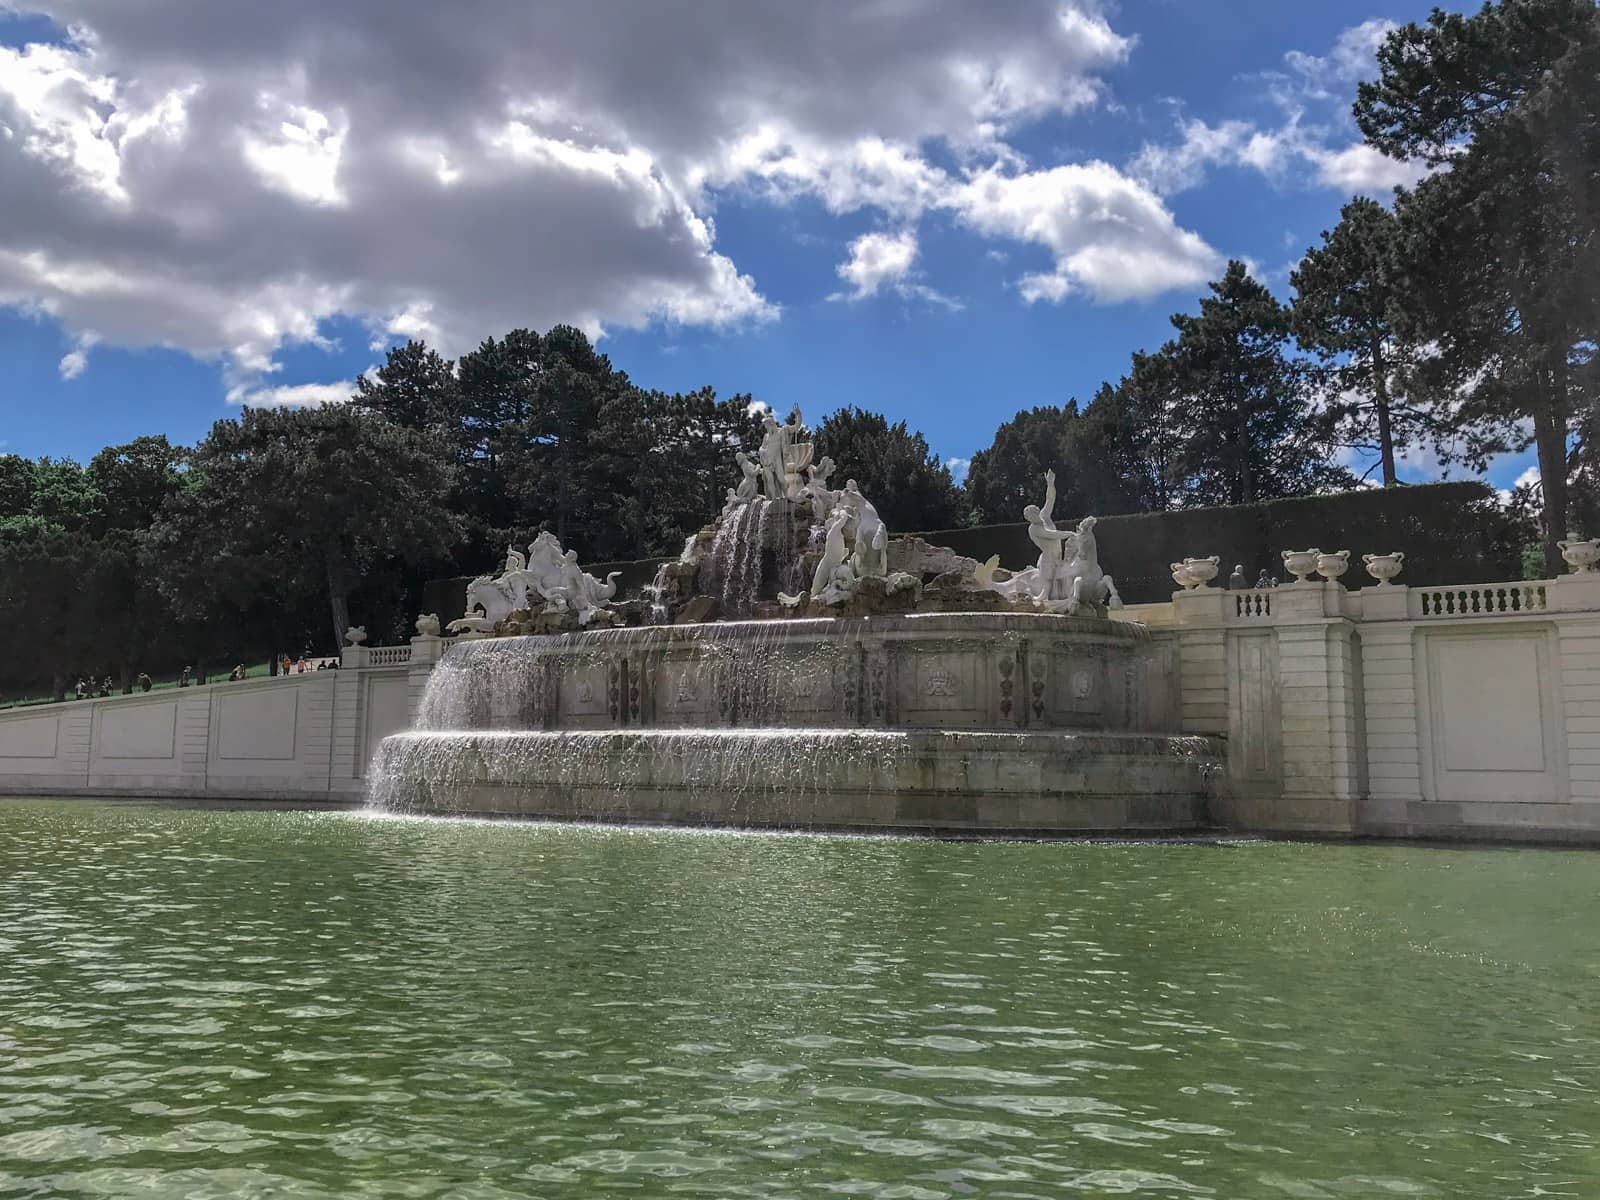 A large fountain with sculptures, water going into the man-made pond below. There are trees in the background and the sky is bright blue.